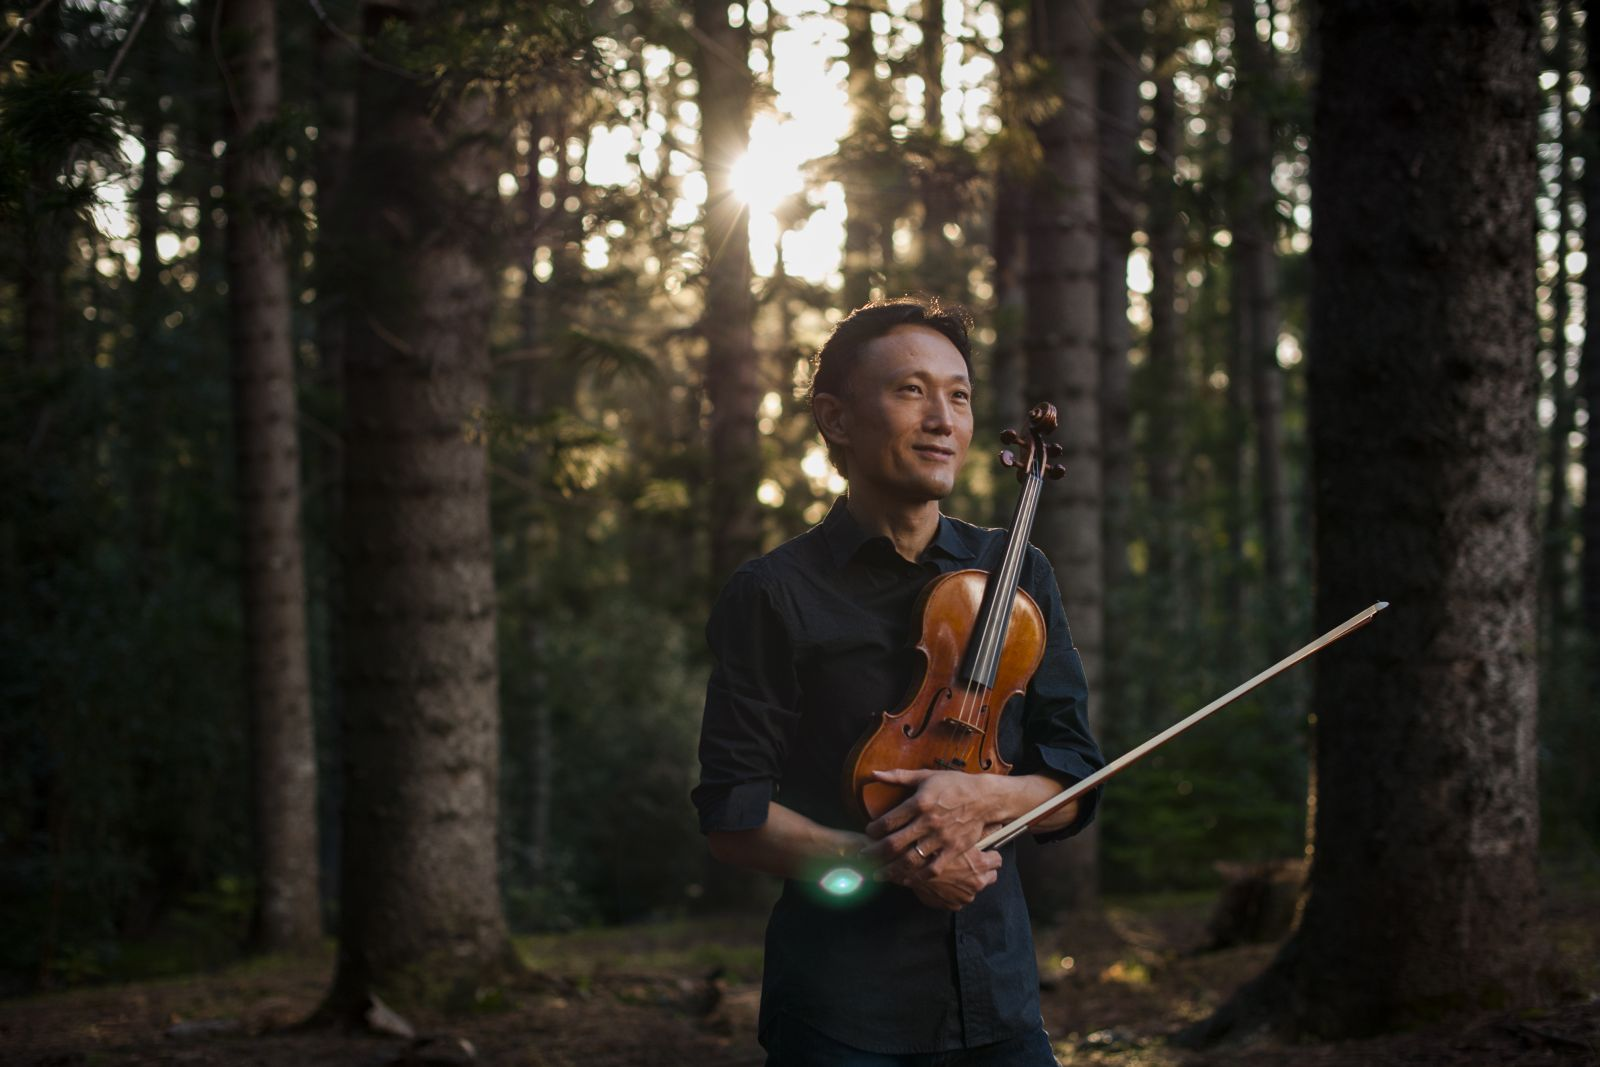 MACC Presents Free Jan. 2 Livestreaming Concert of Violinist Ignance Jang and Pianist Jonathan Korth